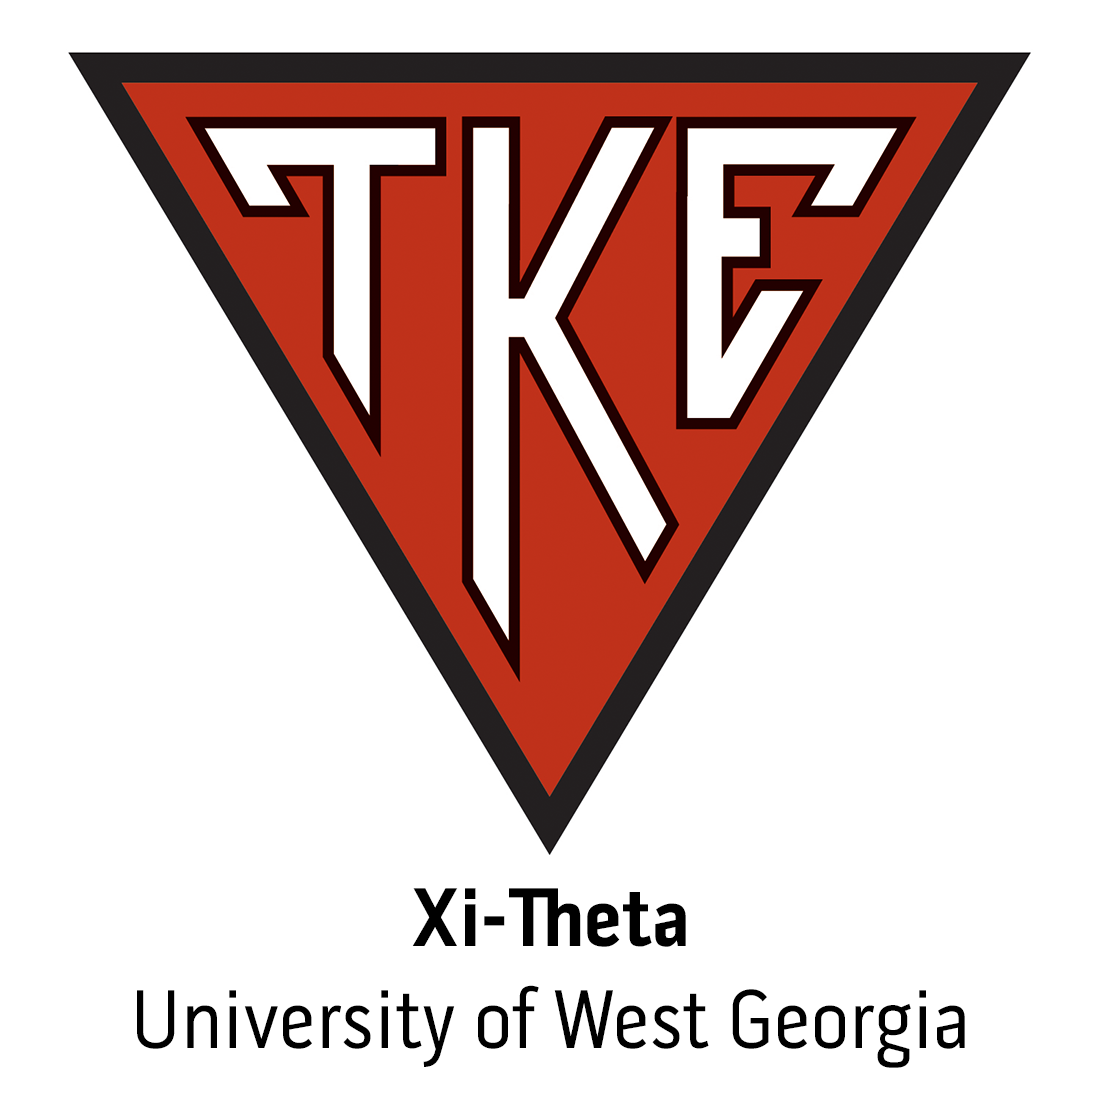 Xi-Theta Chapter at University of West Georgia